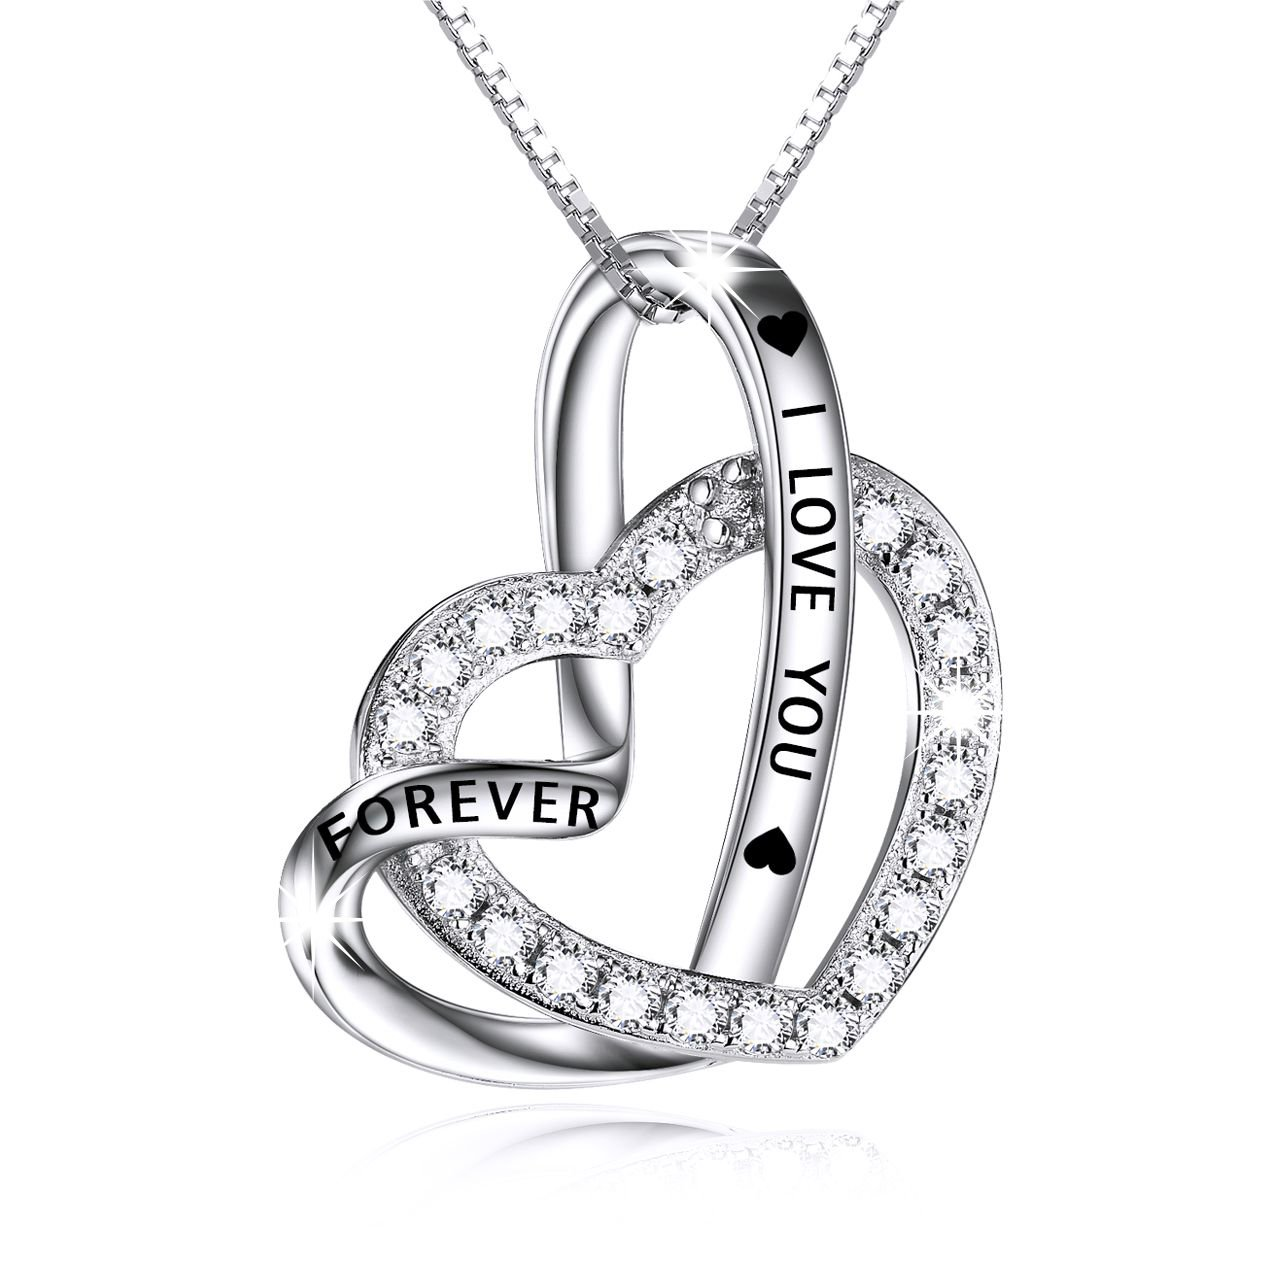 Cuoka Sterling Silver Double Heart Necklace Engraved I Love You Forever Pendant Gift for Her CZ Jewelry